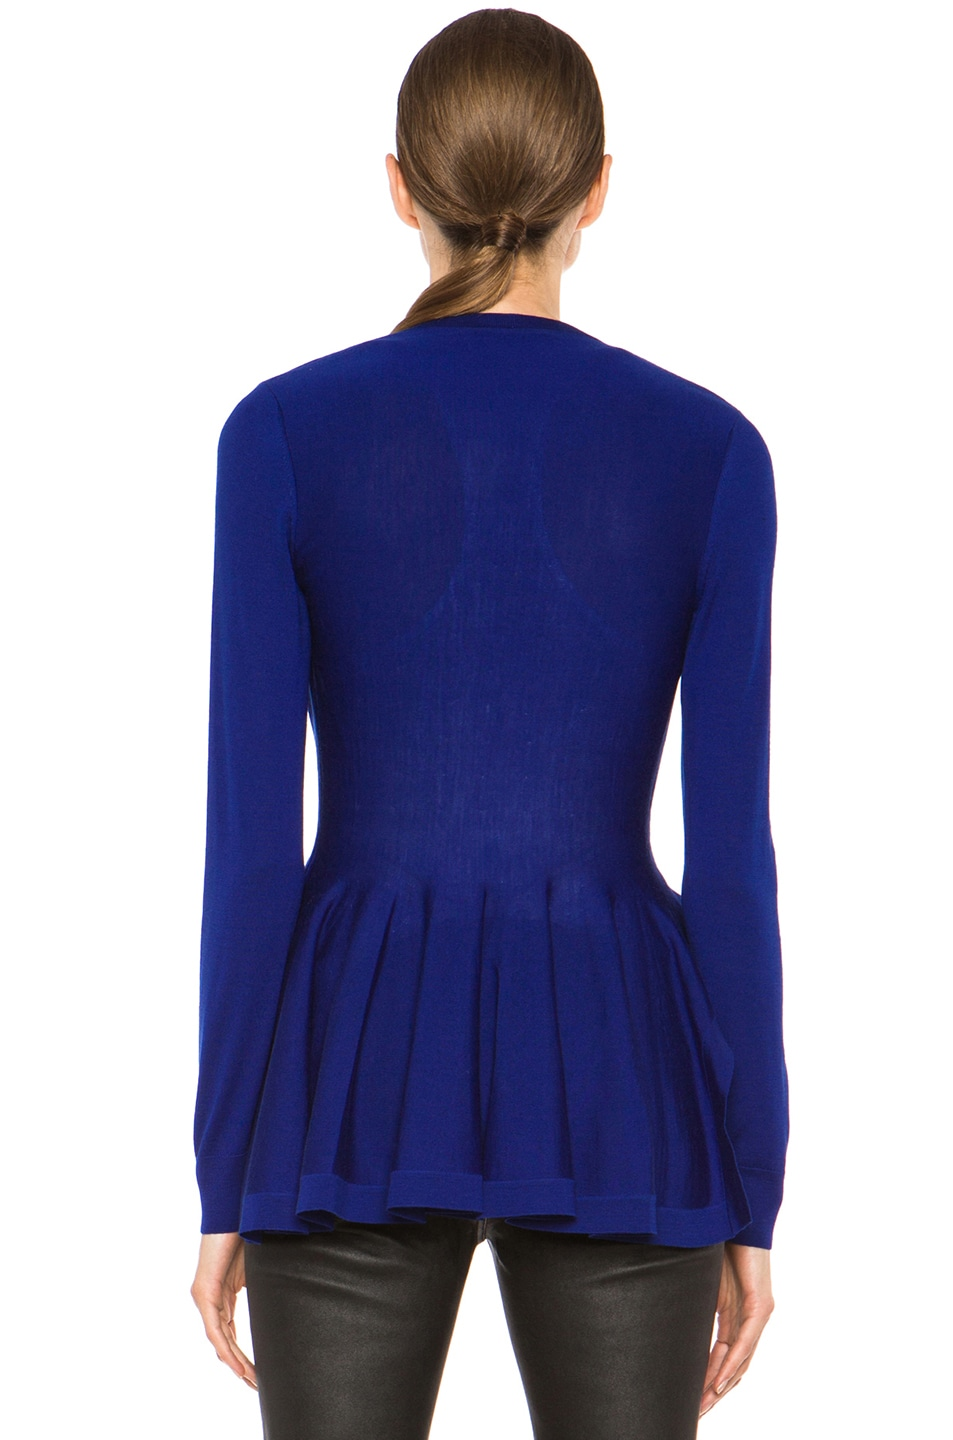 Alexander McQueen Peplum Sweater Cardigan in Royal Blue | FWRD